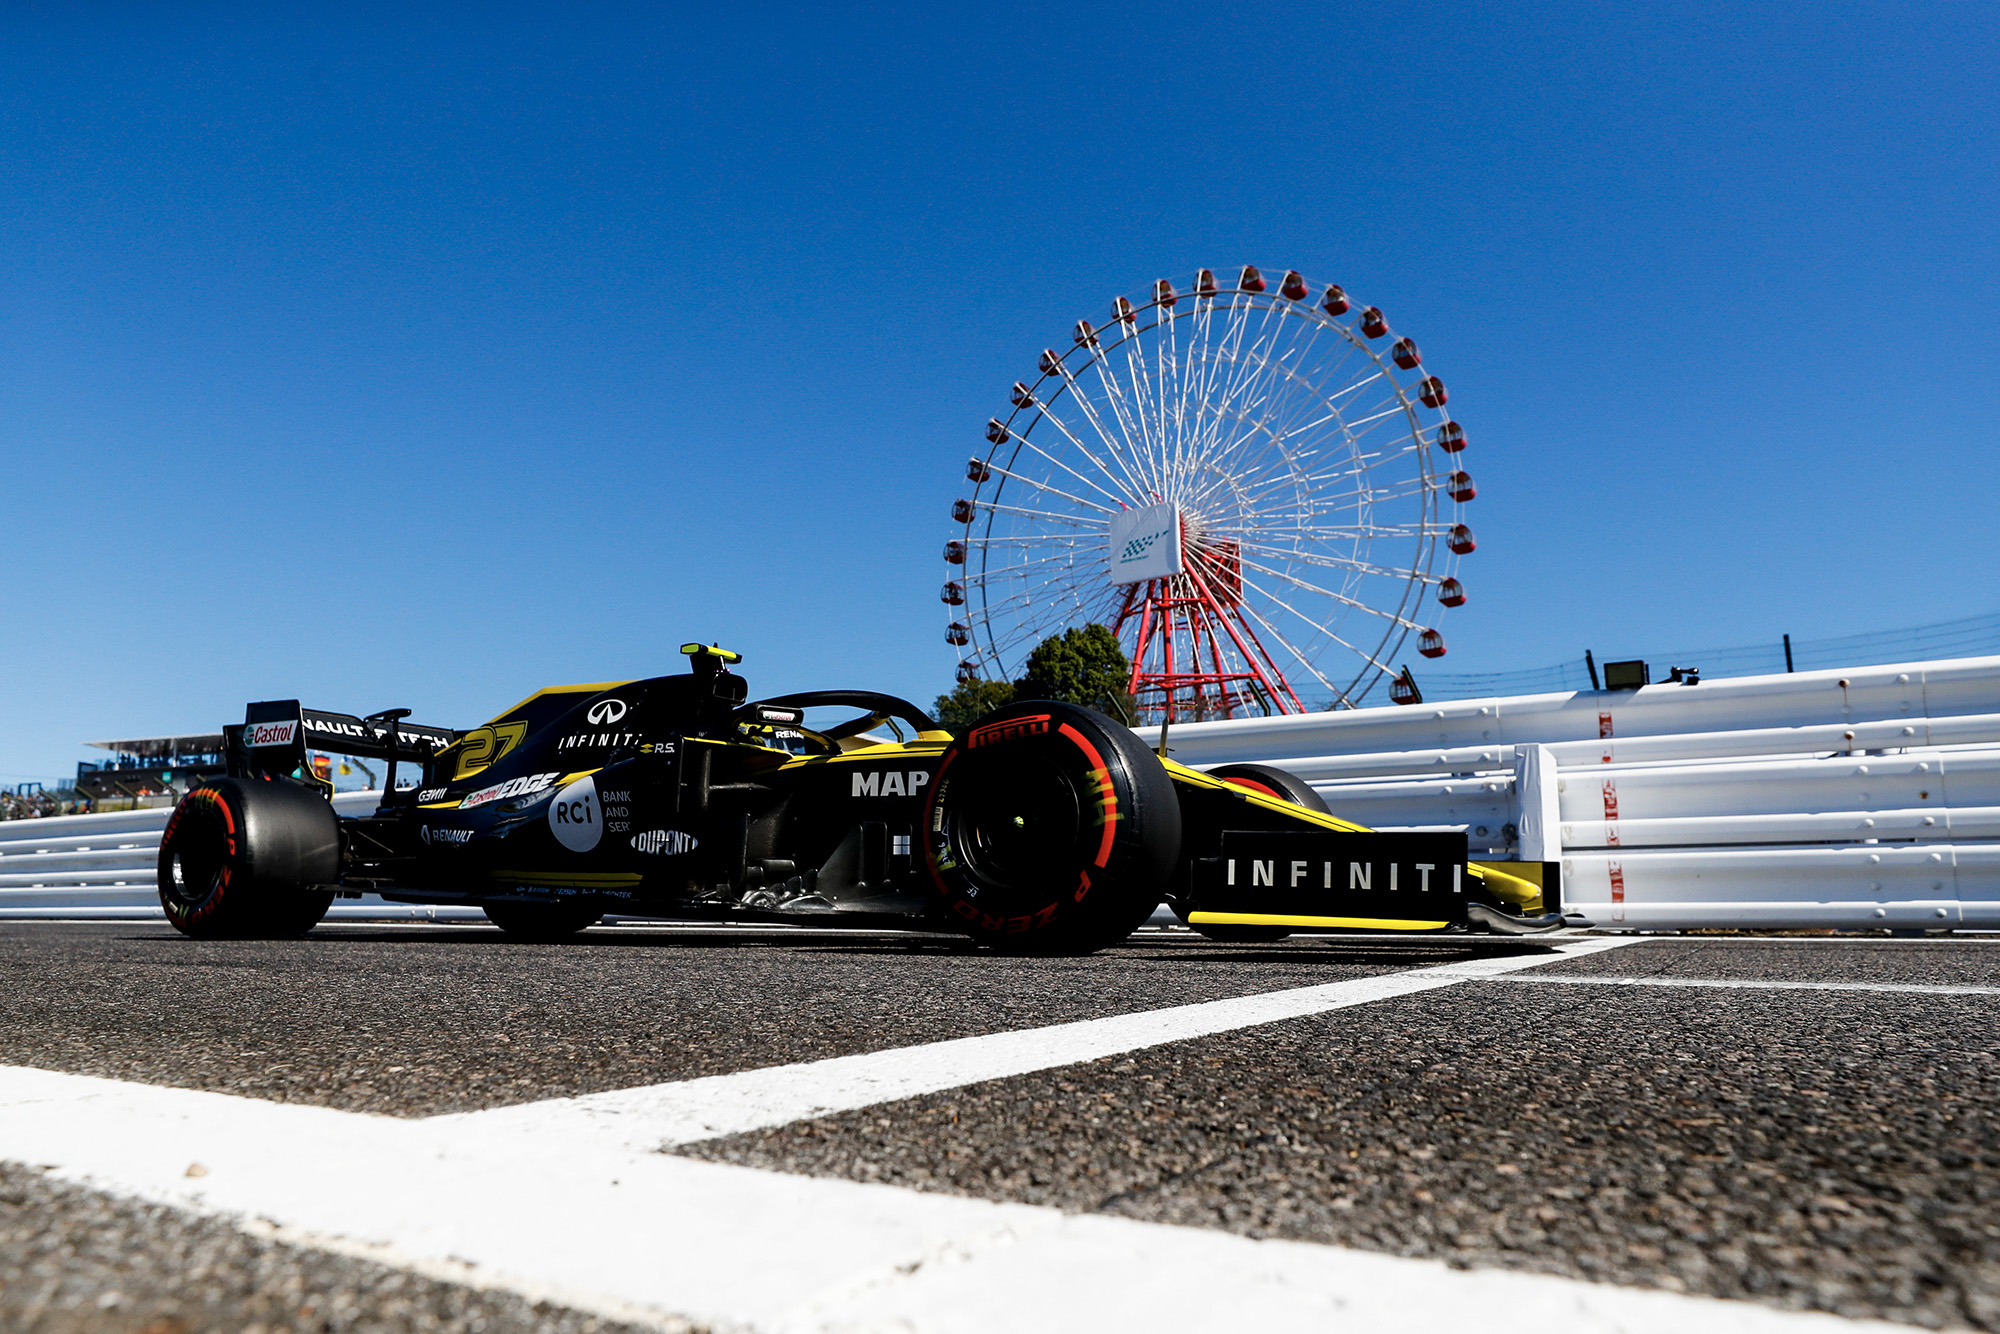 Renault disqualified from Japanese GP after illegal brake system spotted on TV